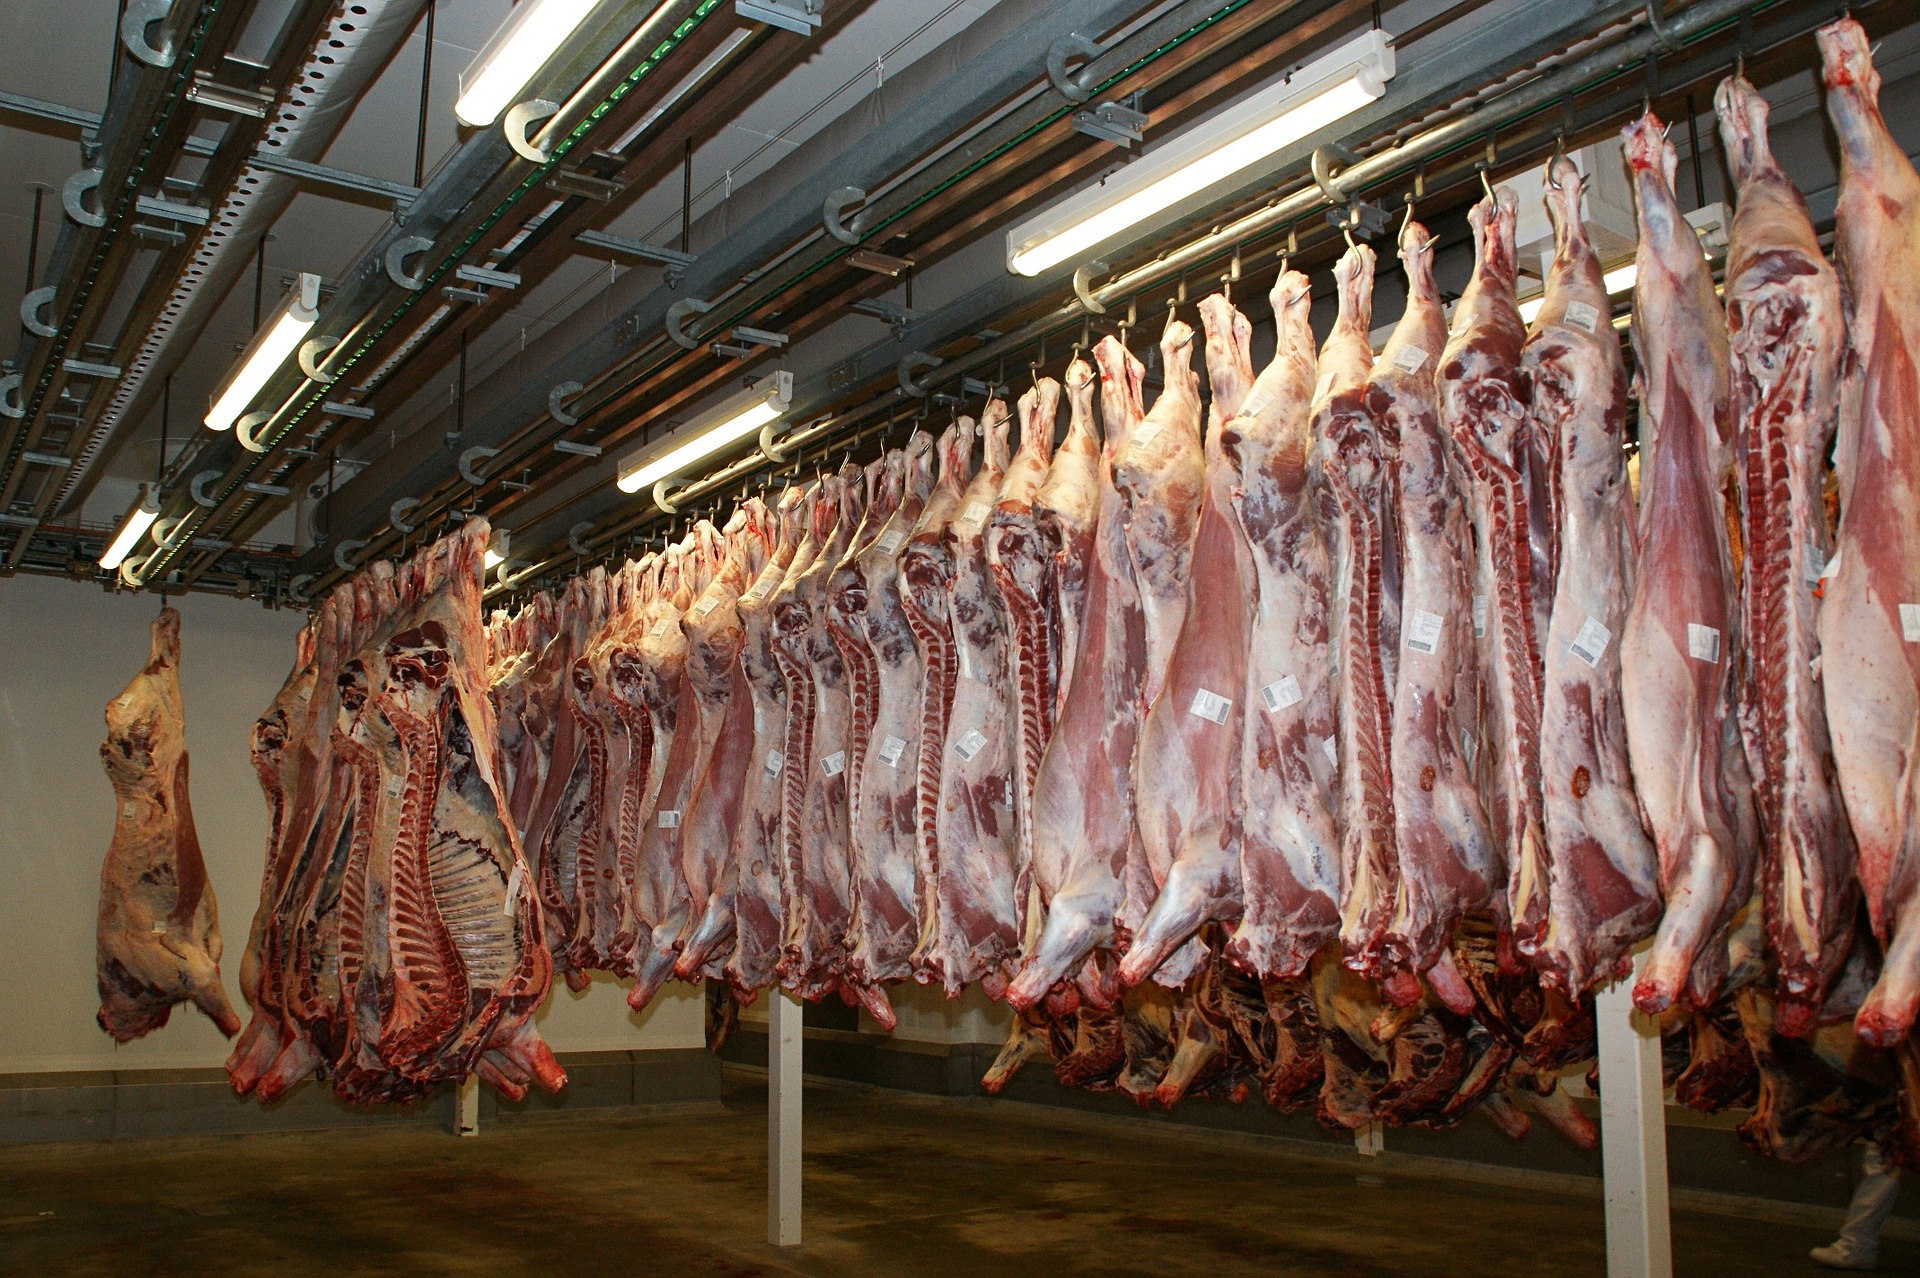 Madrid Monitors 27 Million Animals In Slaughterhouses Per Year